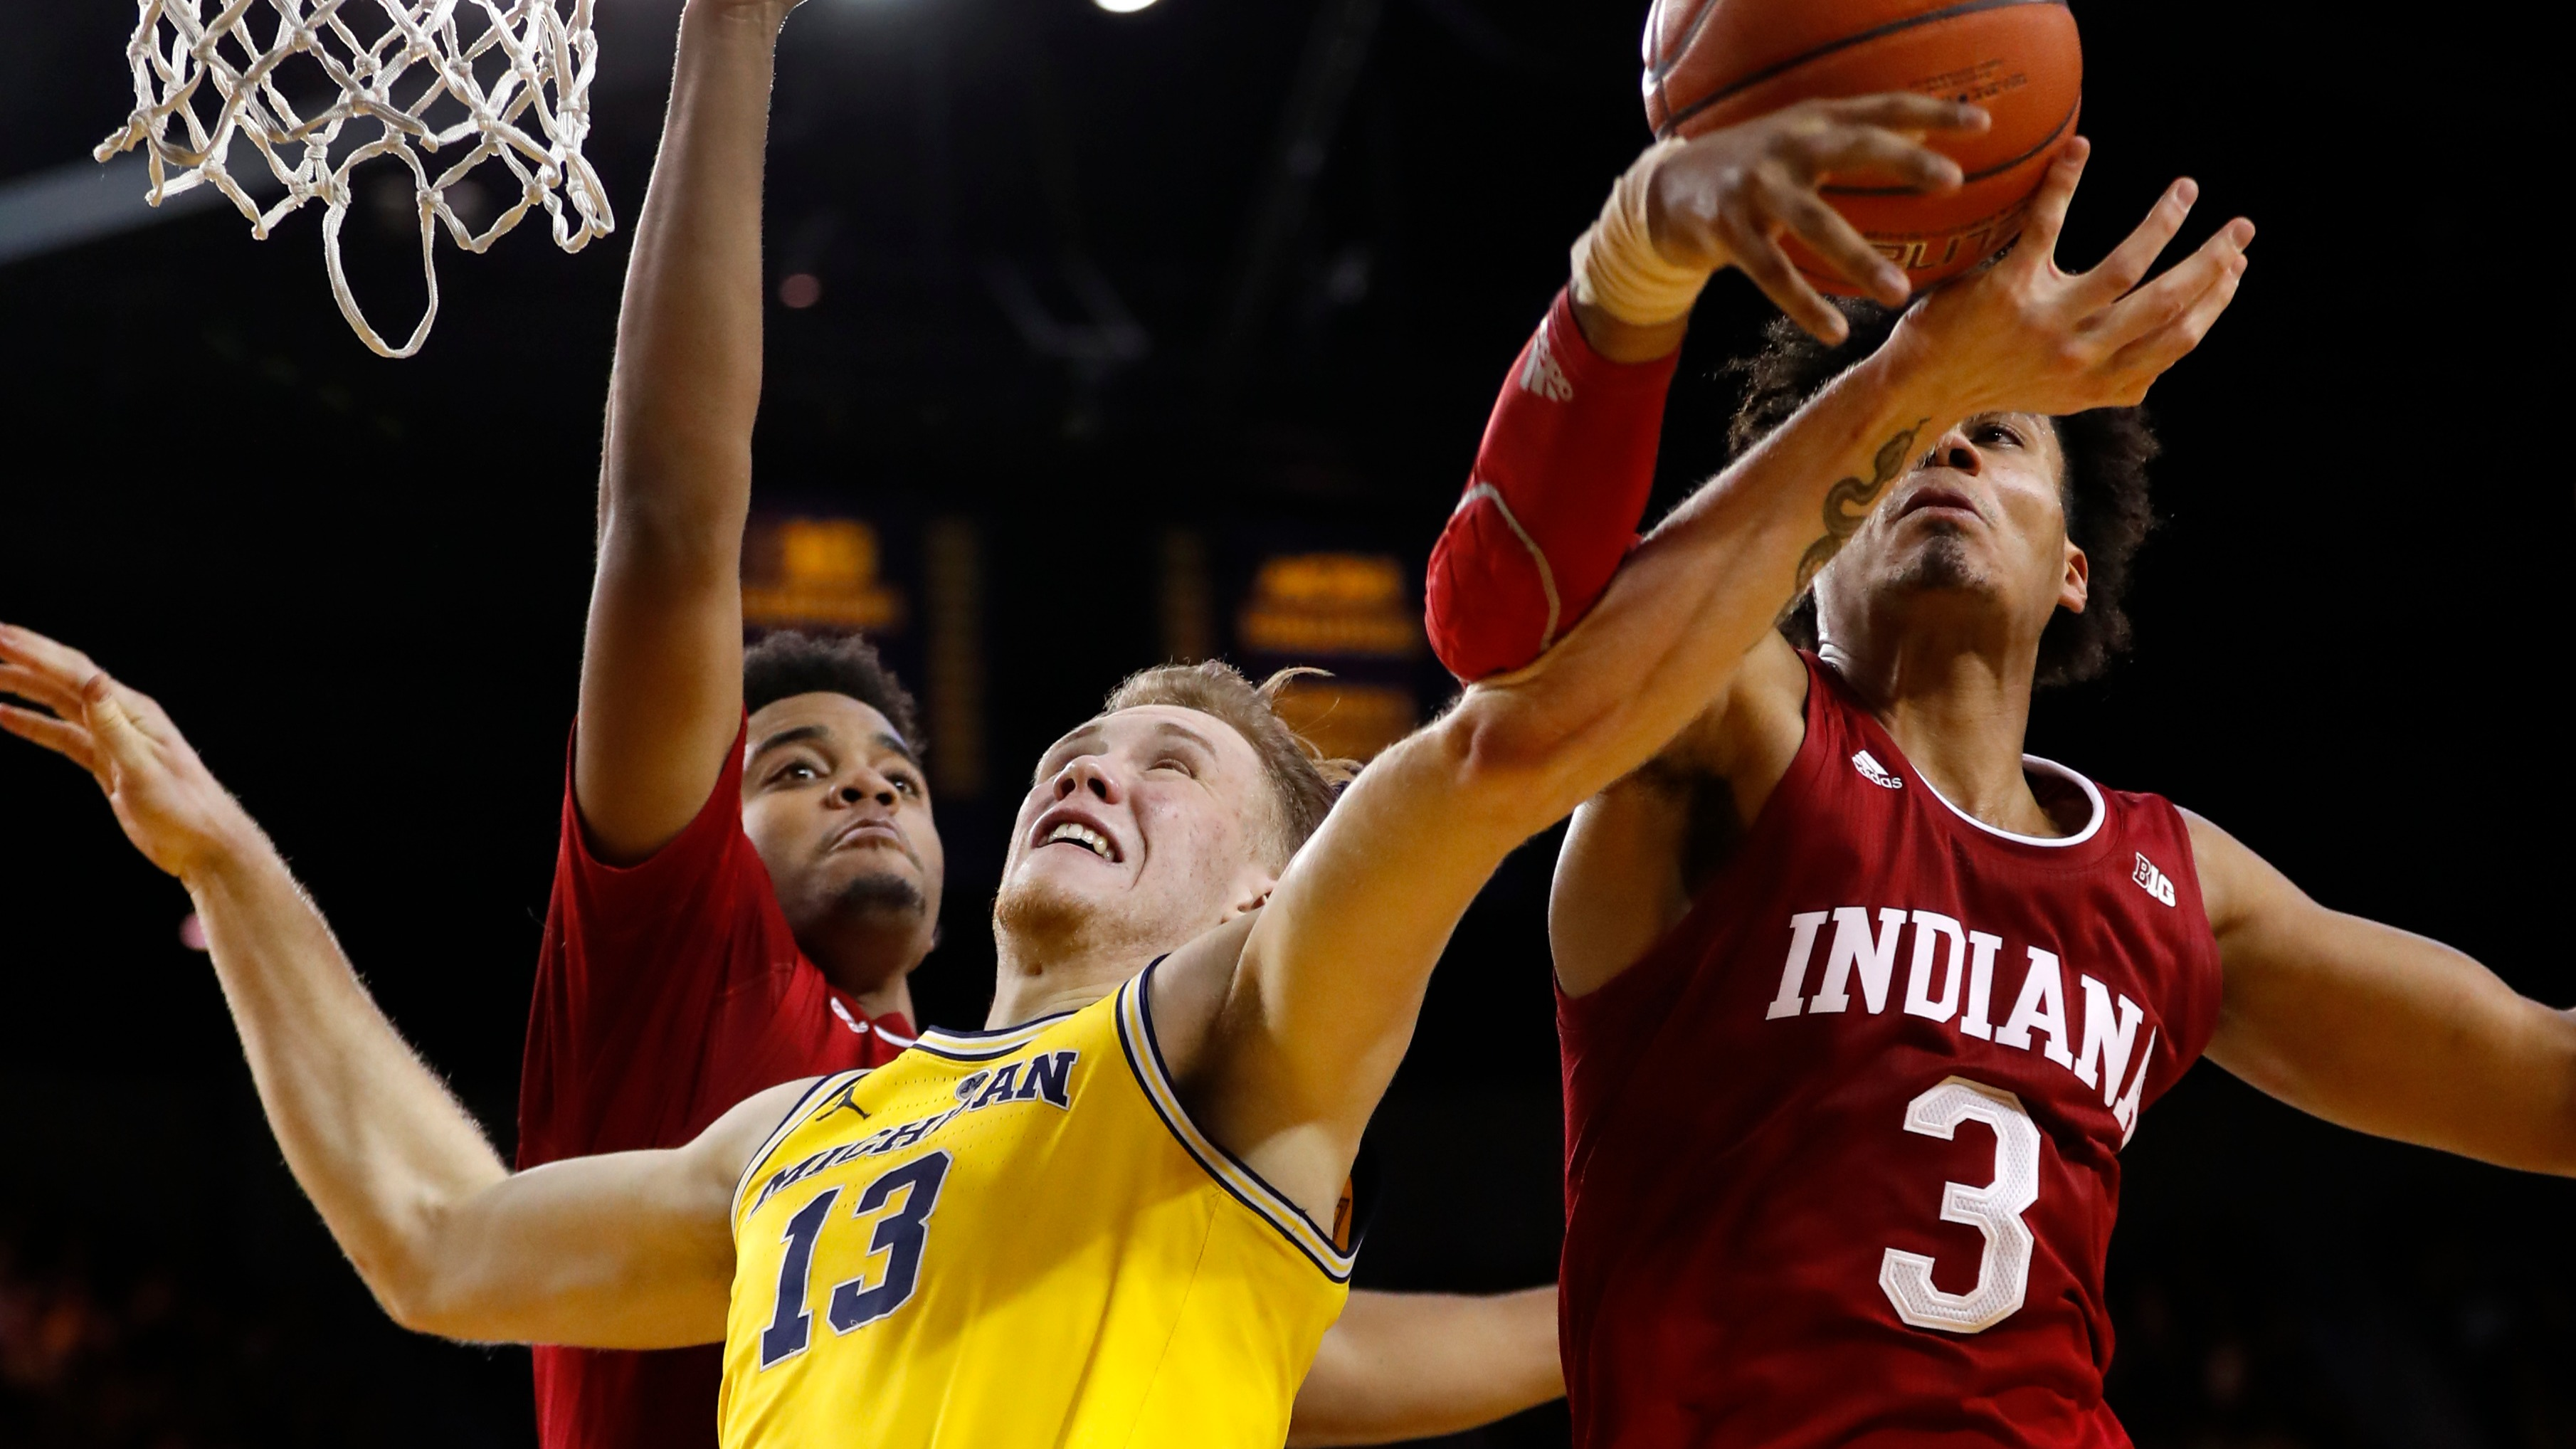 Michigan vs indiana betting prediction